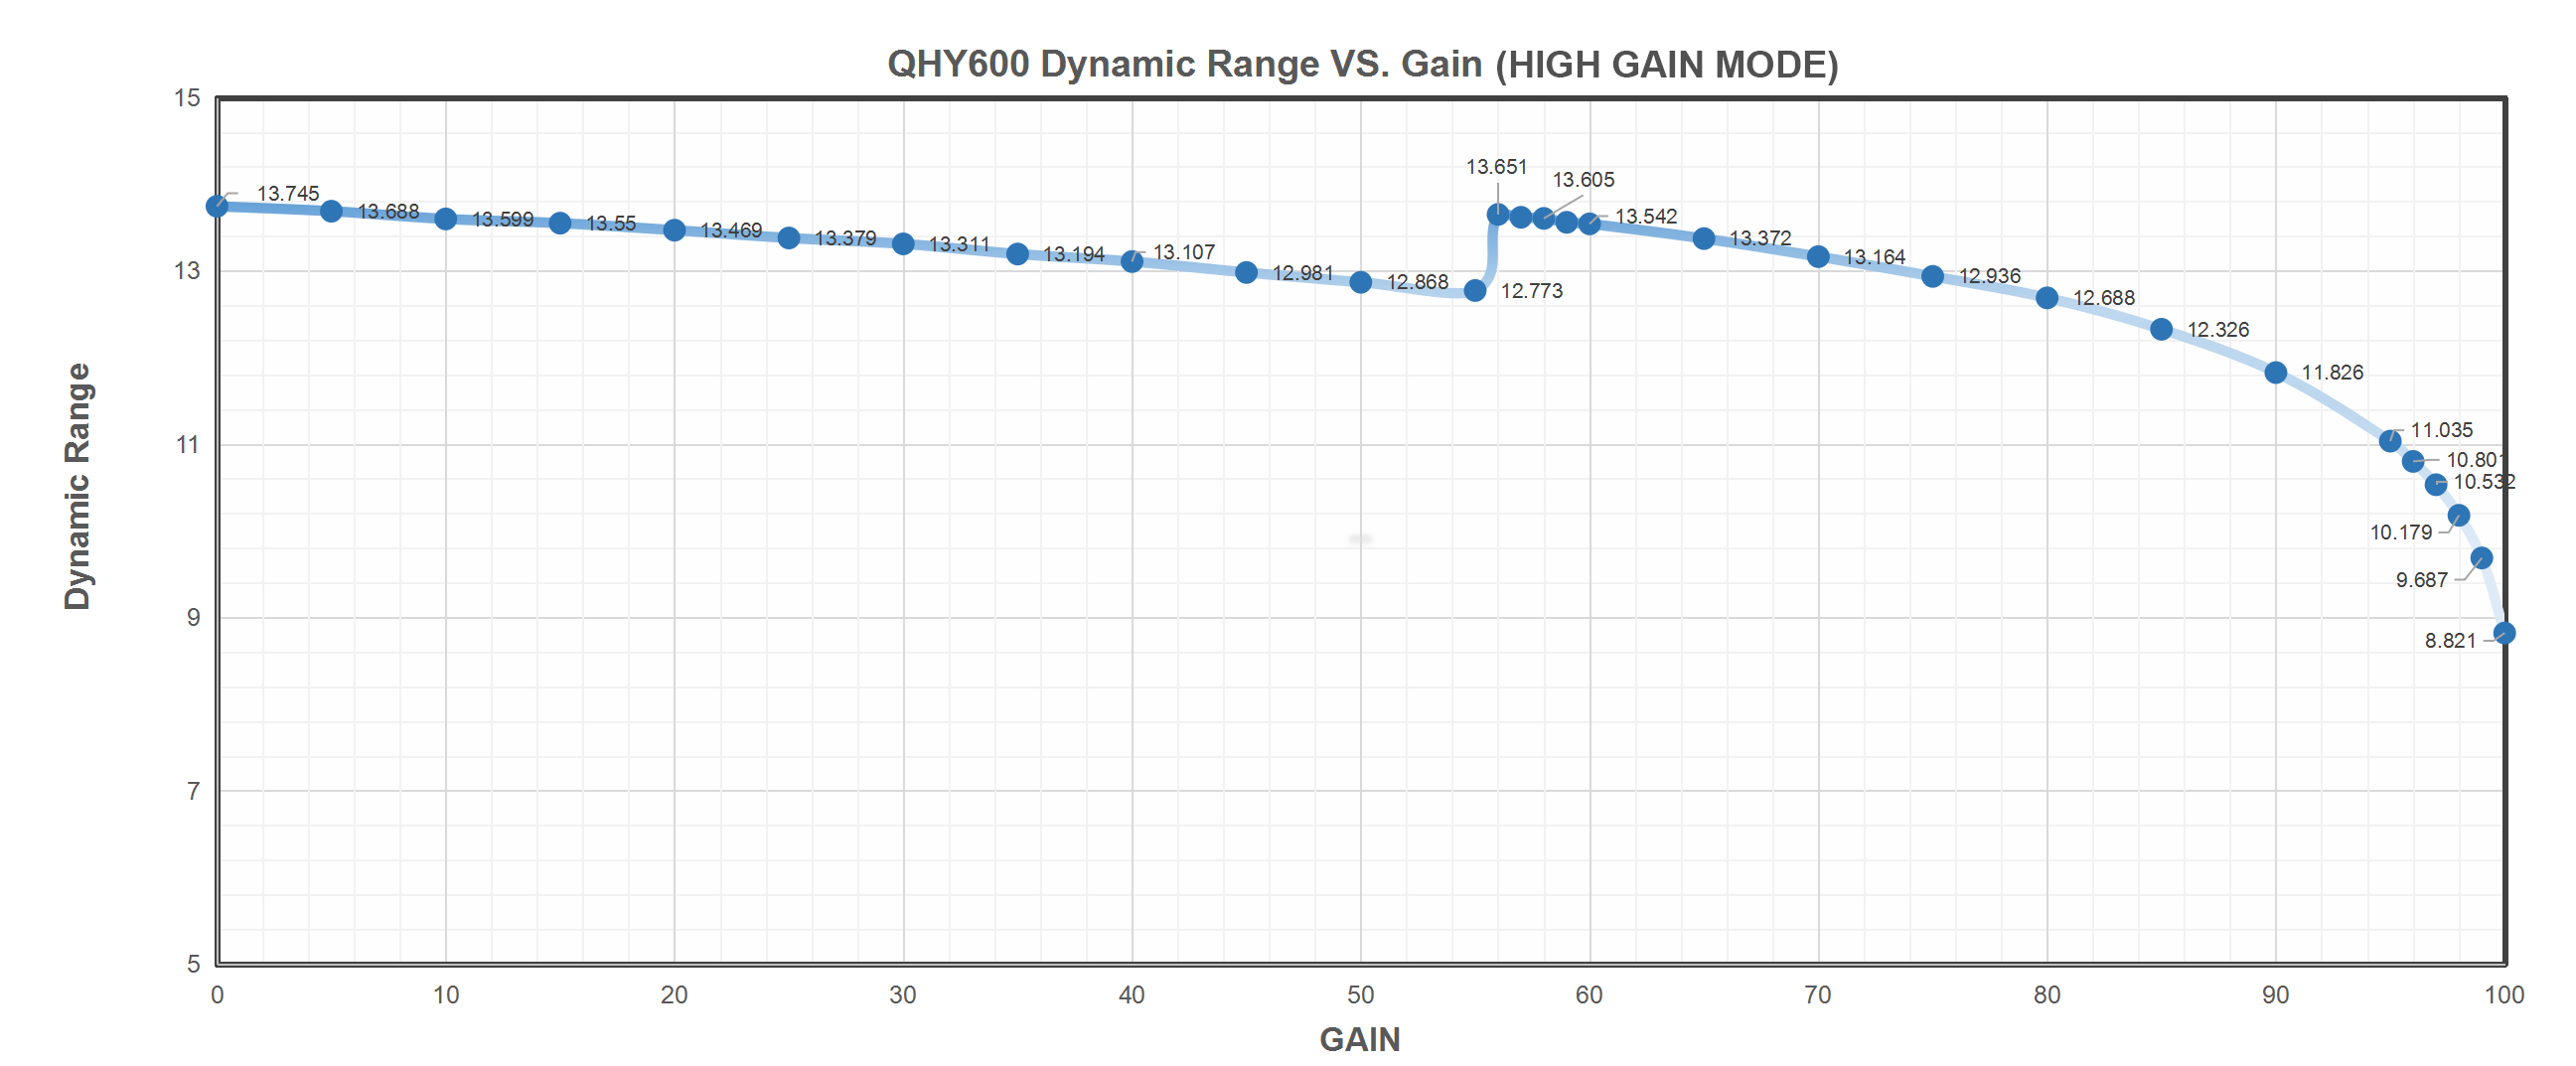 QHY600 Dynamic Range VS. Gain (High Gain Mode)